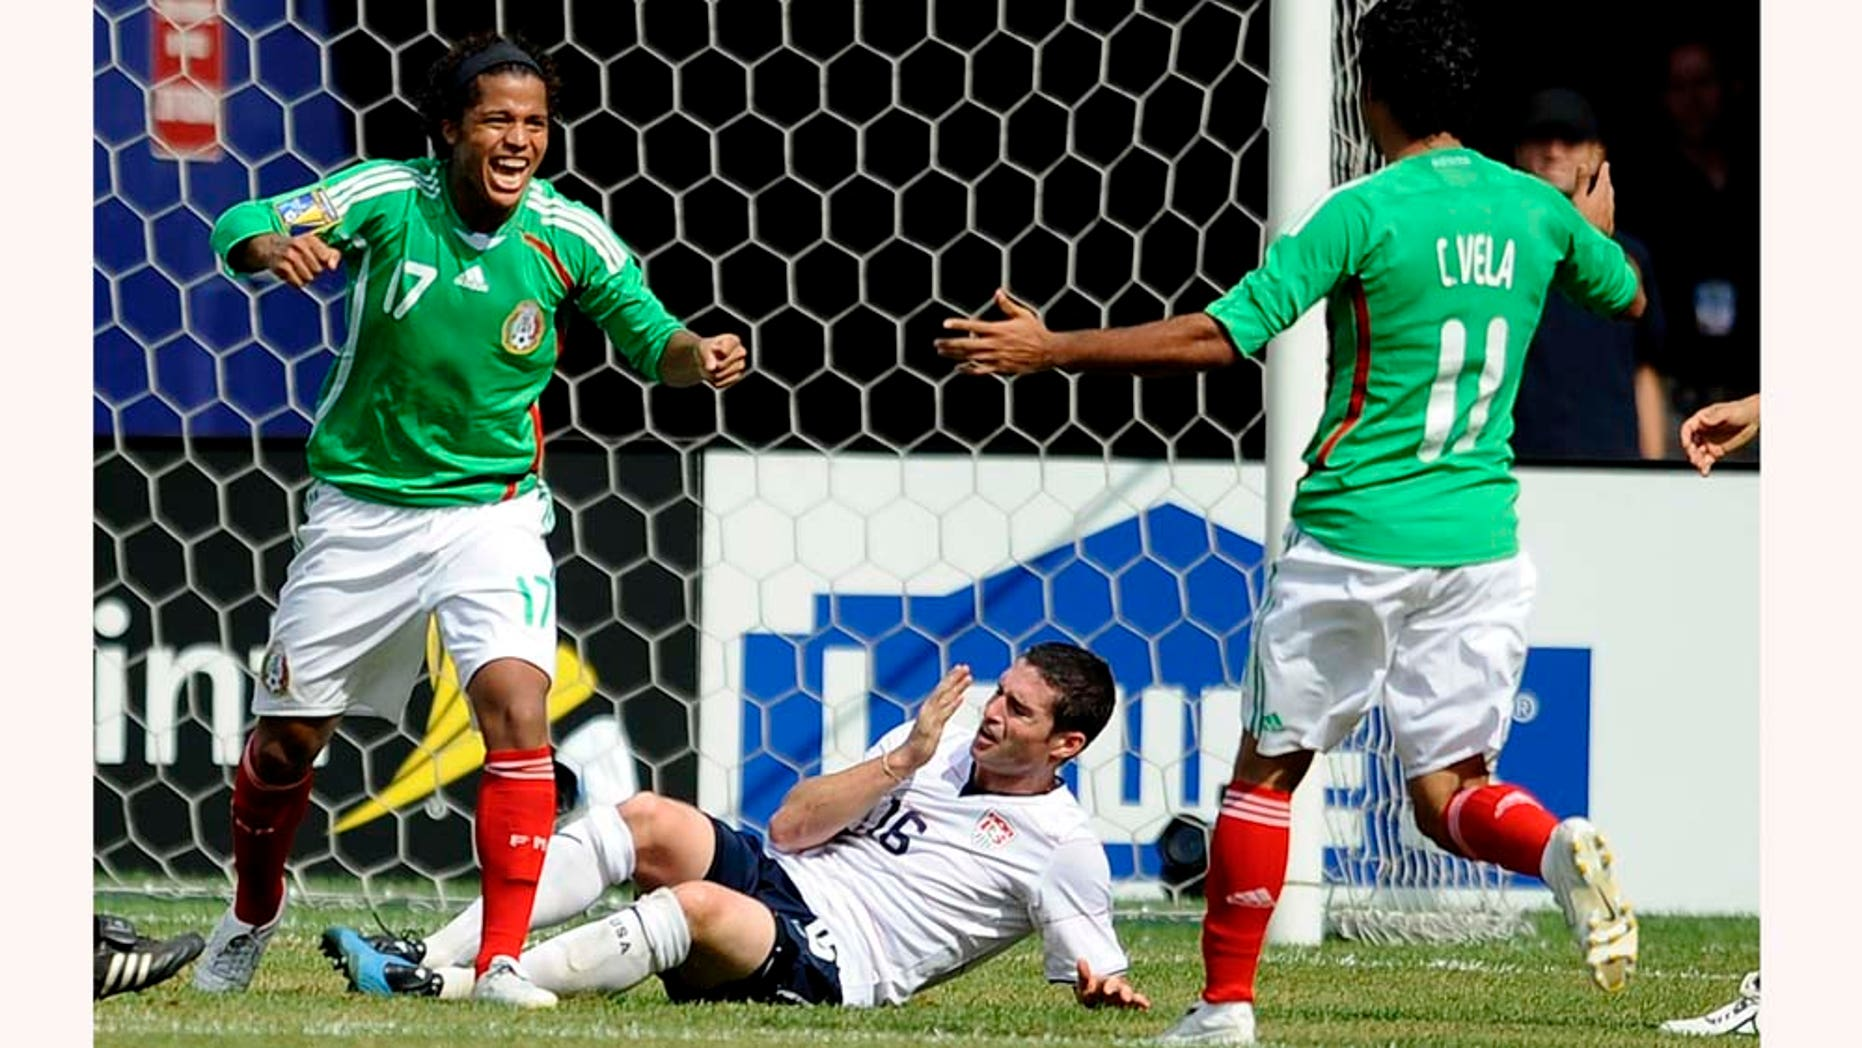 EAST RUTHERFORD, NJ - JULY 26:  Giovani Dos Santos #17 and Carlos Vela #11 of Mexico celebrate Dos Santos' goal in front of Jay Heaps #16 of the United States in the CONCACAF Gold Cup Championship match at Giants Stadium on July 26, 2009 in East Rutherford, New Jersey.  (Photo by Jeff Zelevansky/Getty Images)